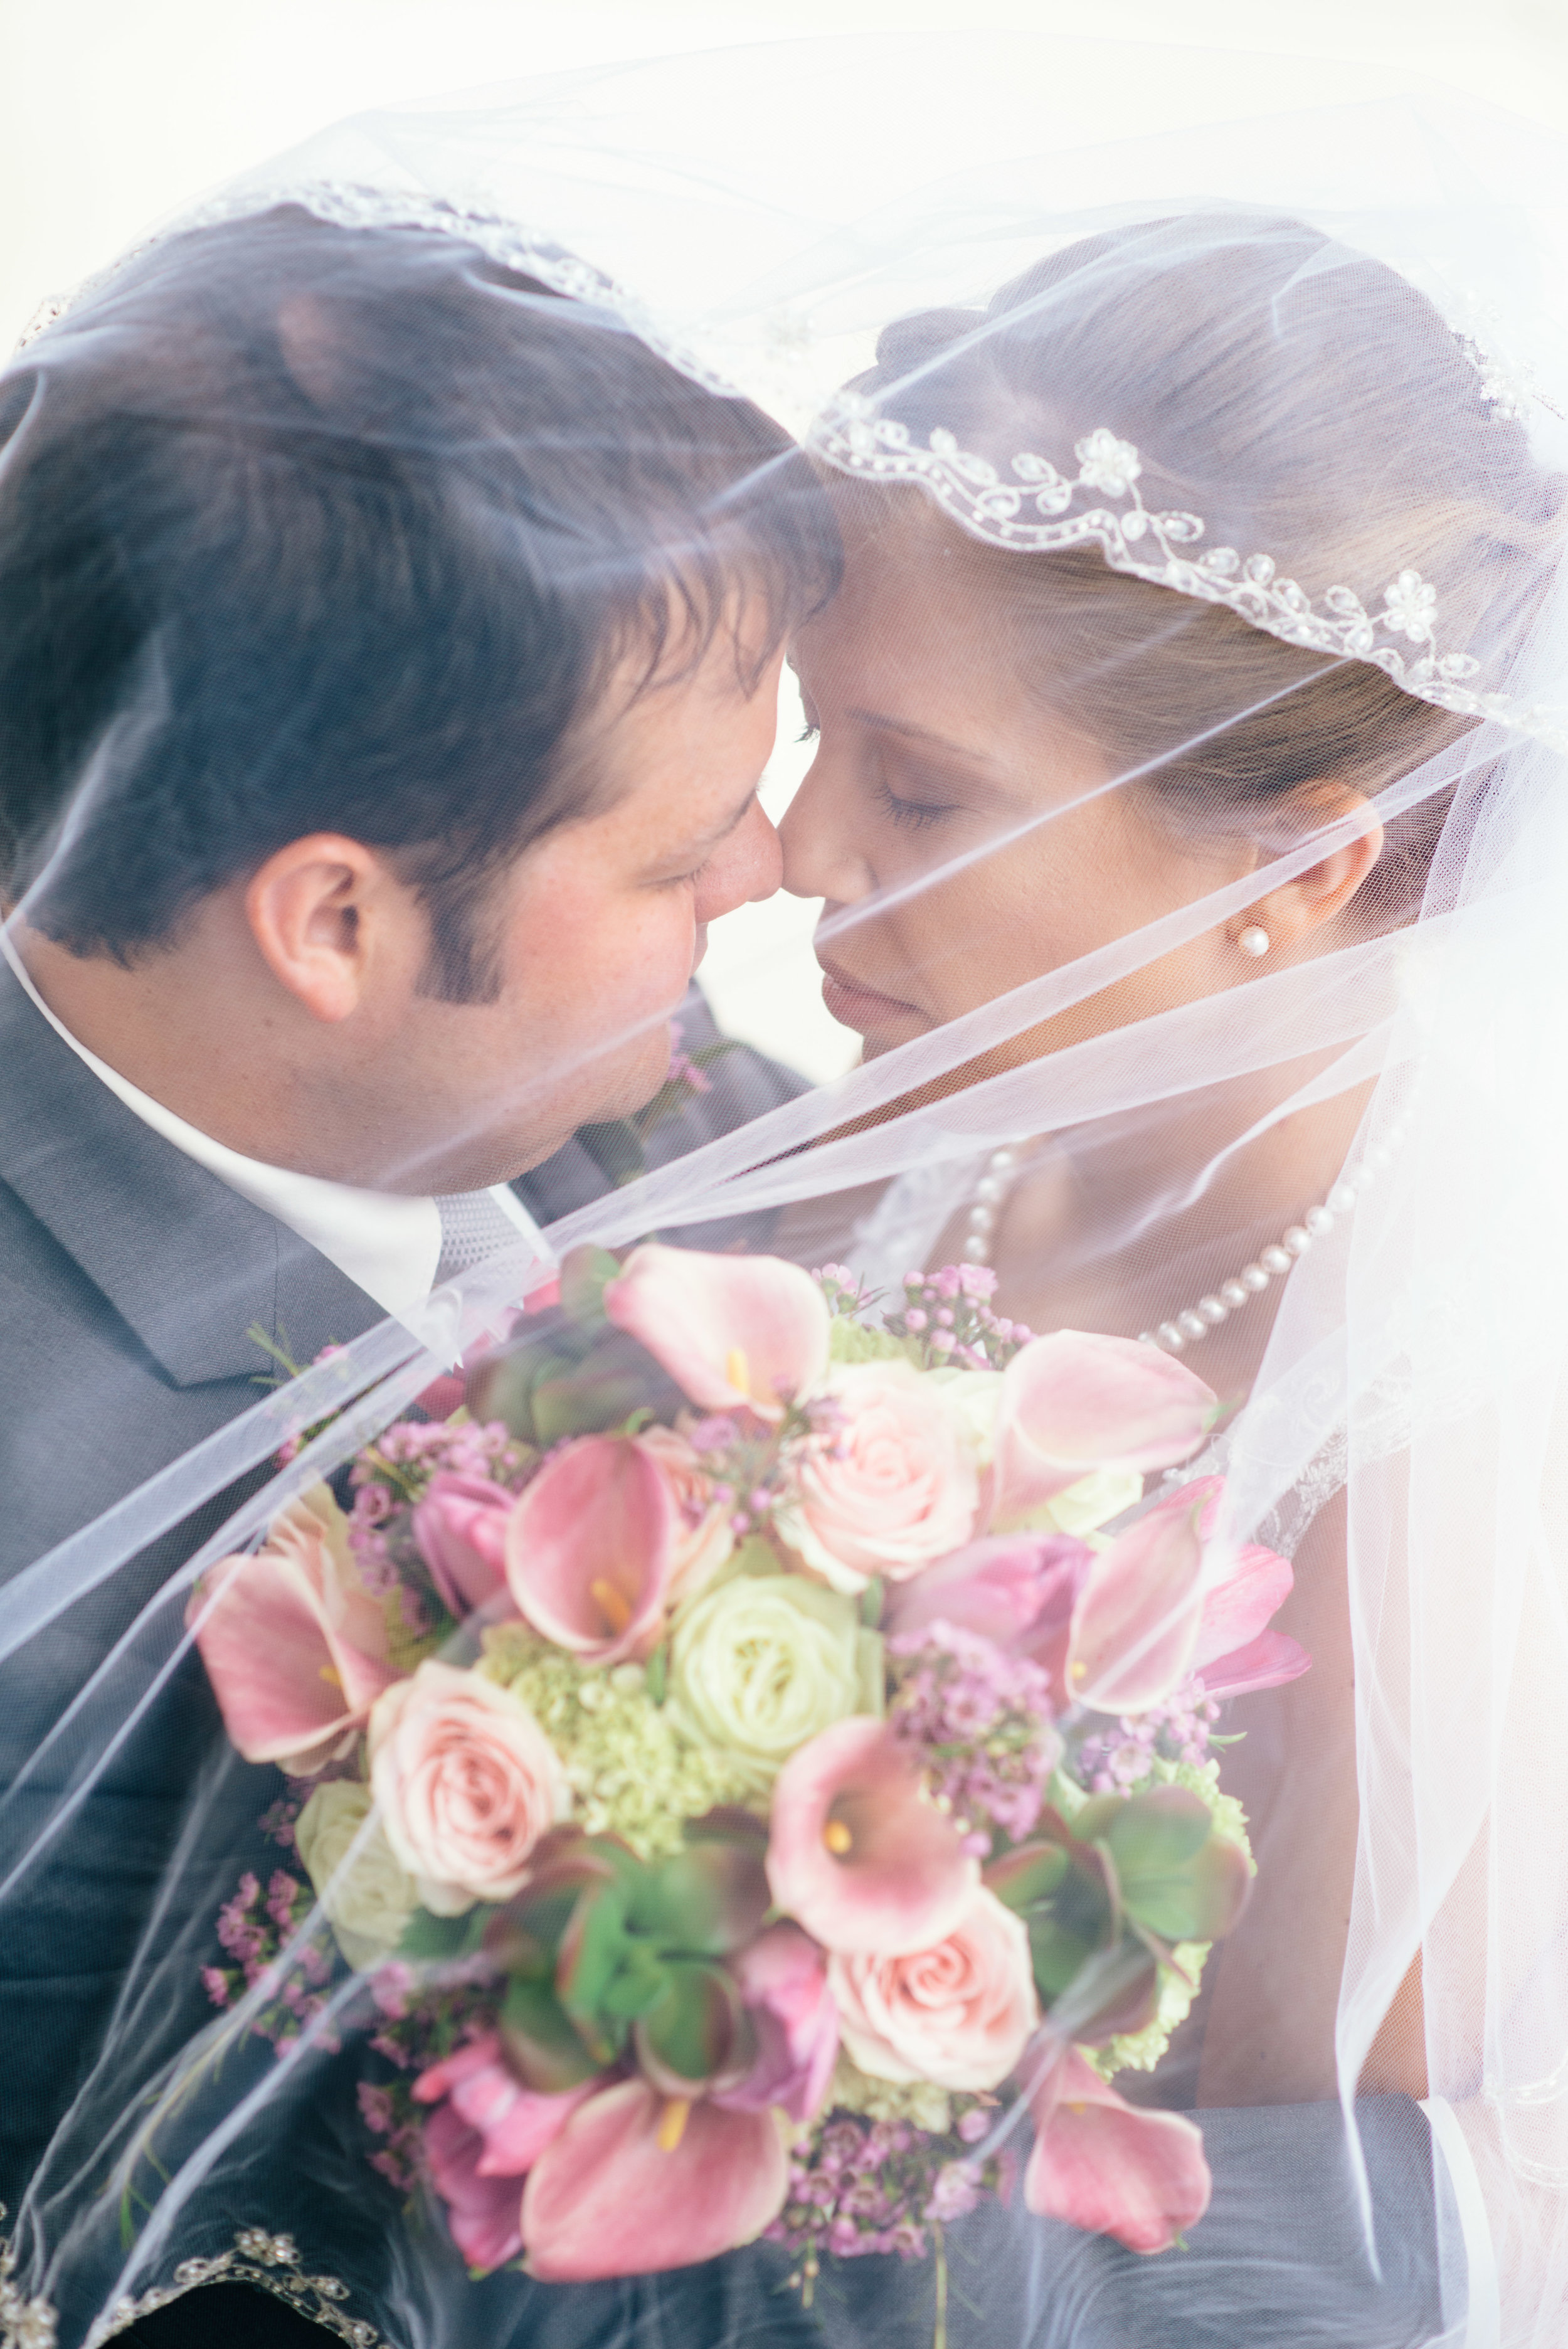 Bride wearing Tiffany's pearls and her groom sharing an intimate moment under a lace veil